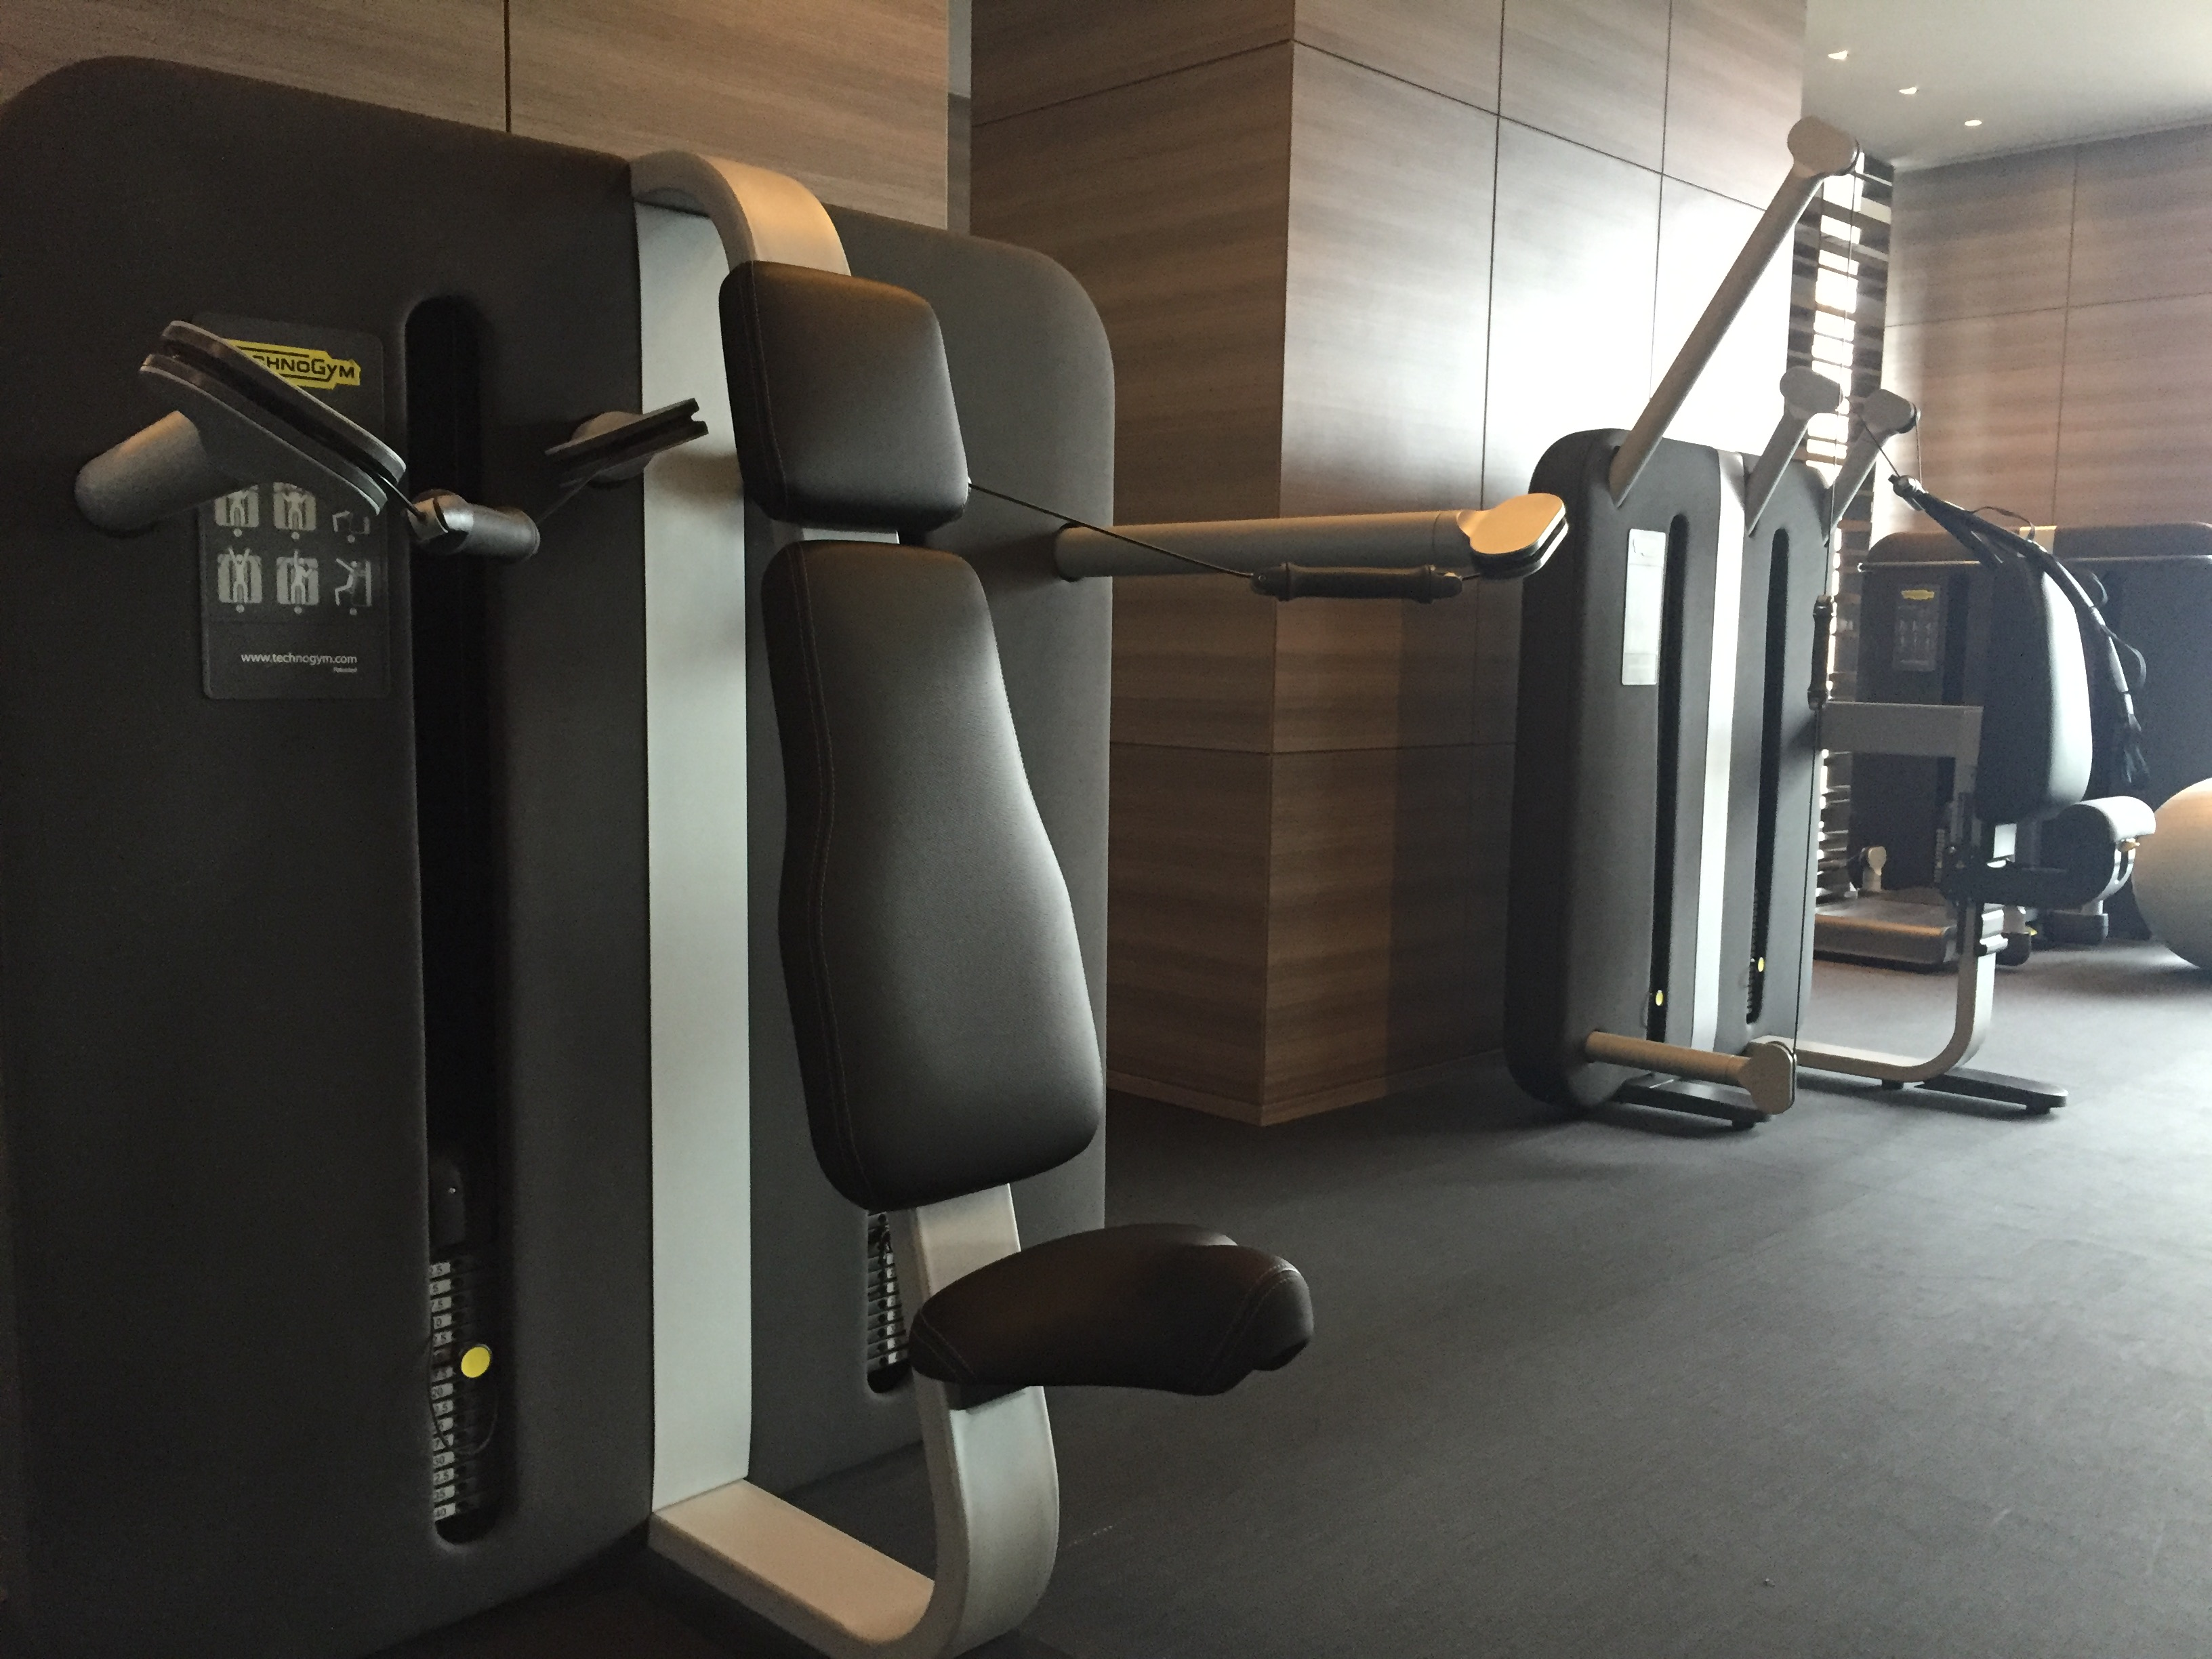 Park Hyatt New York Gym Machines